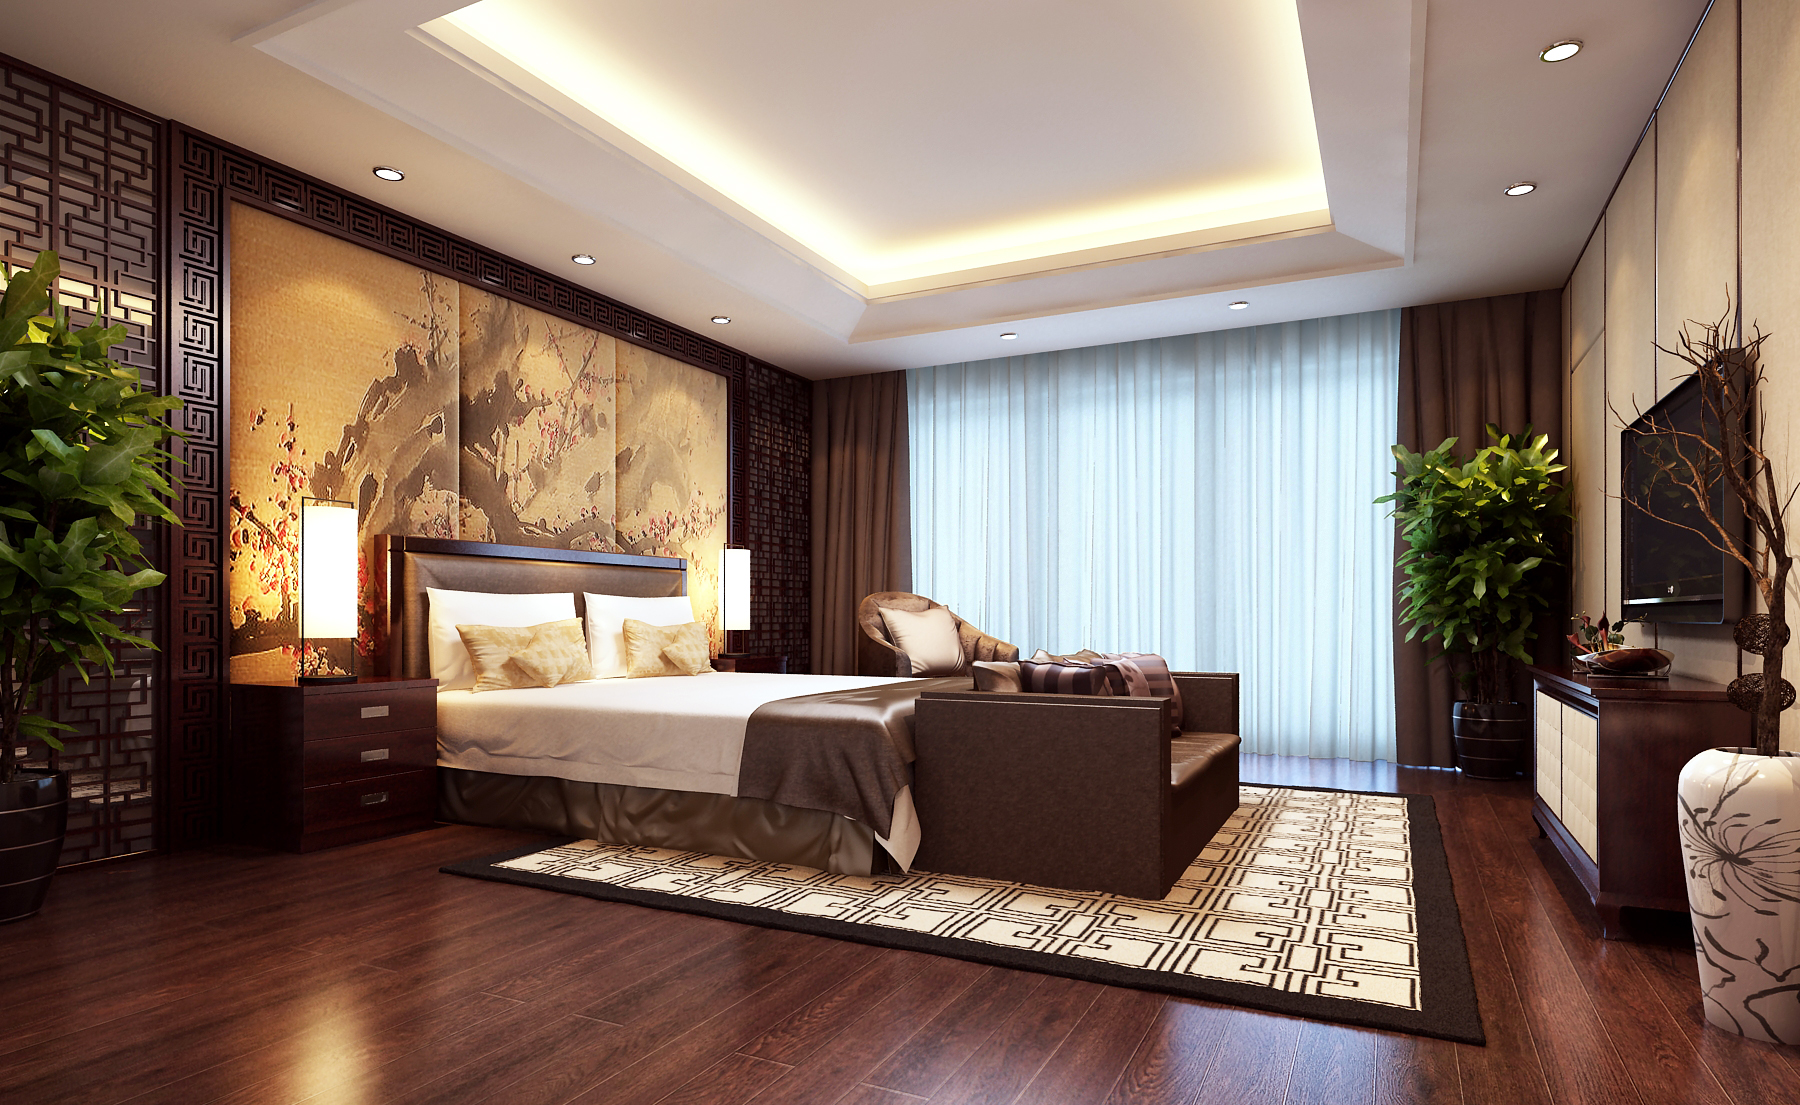 Modern brown bedroom 3d model max for Bedroom designs 3d model